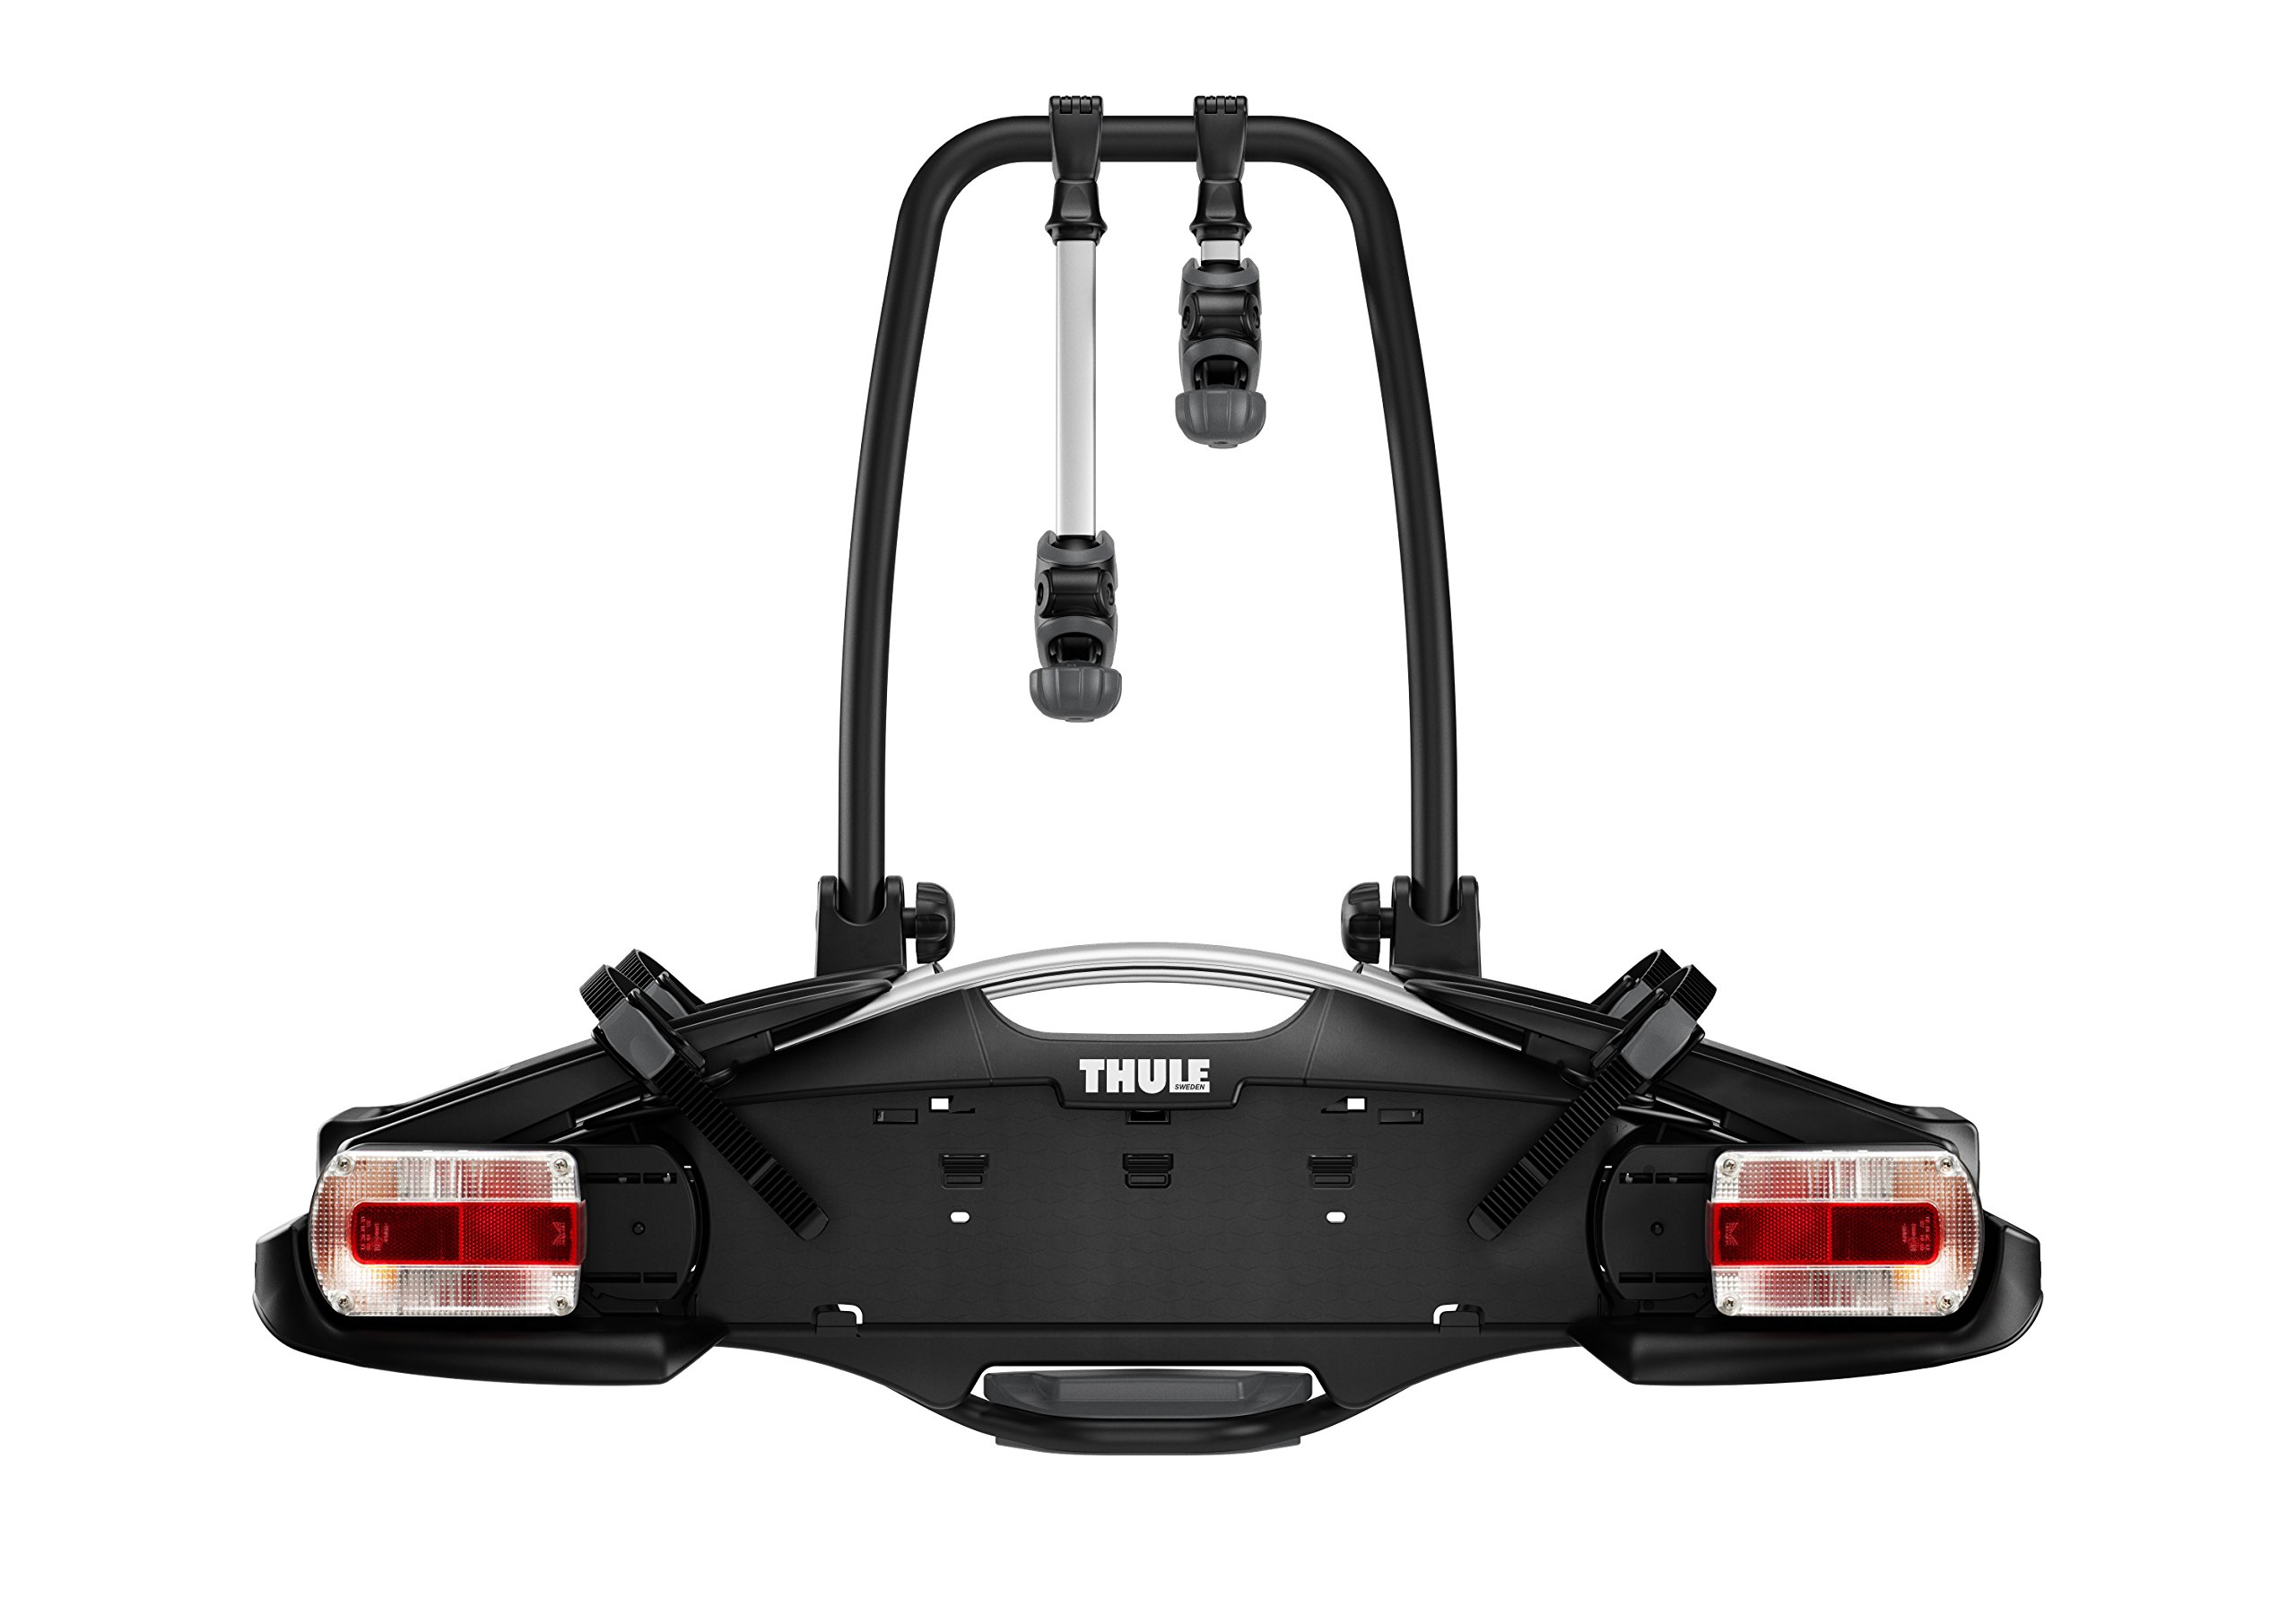 Thule 925001,Velo Compact 925, 2Bike, Towball Carrier, 7 pin 2